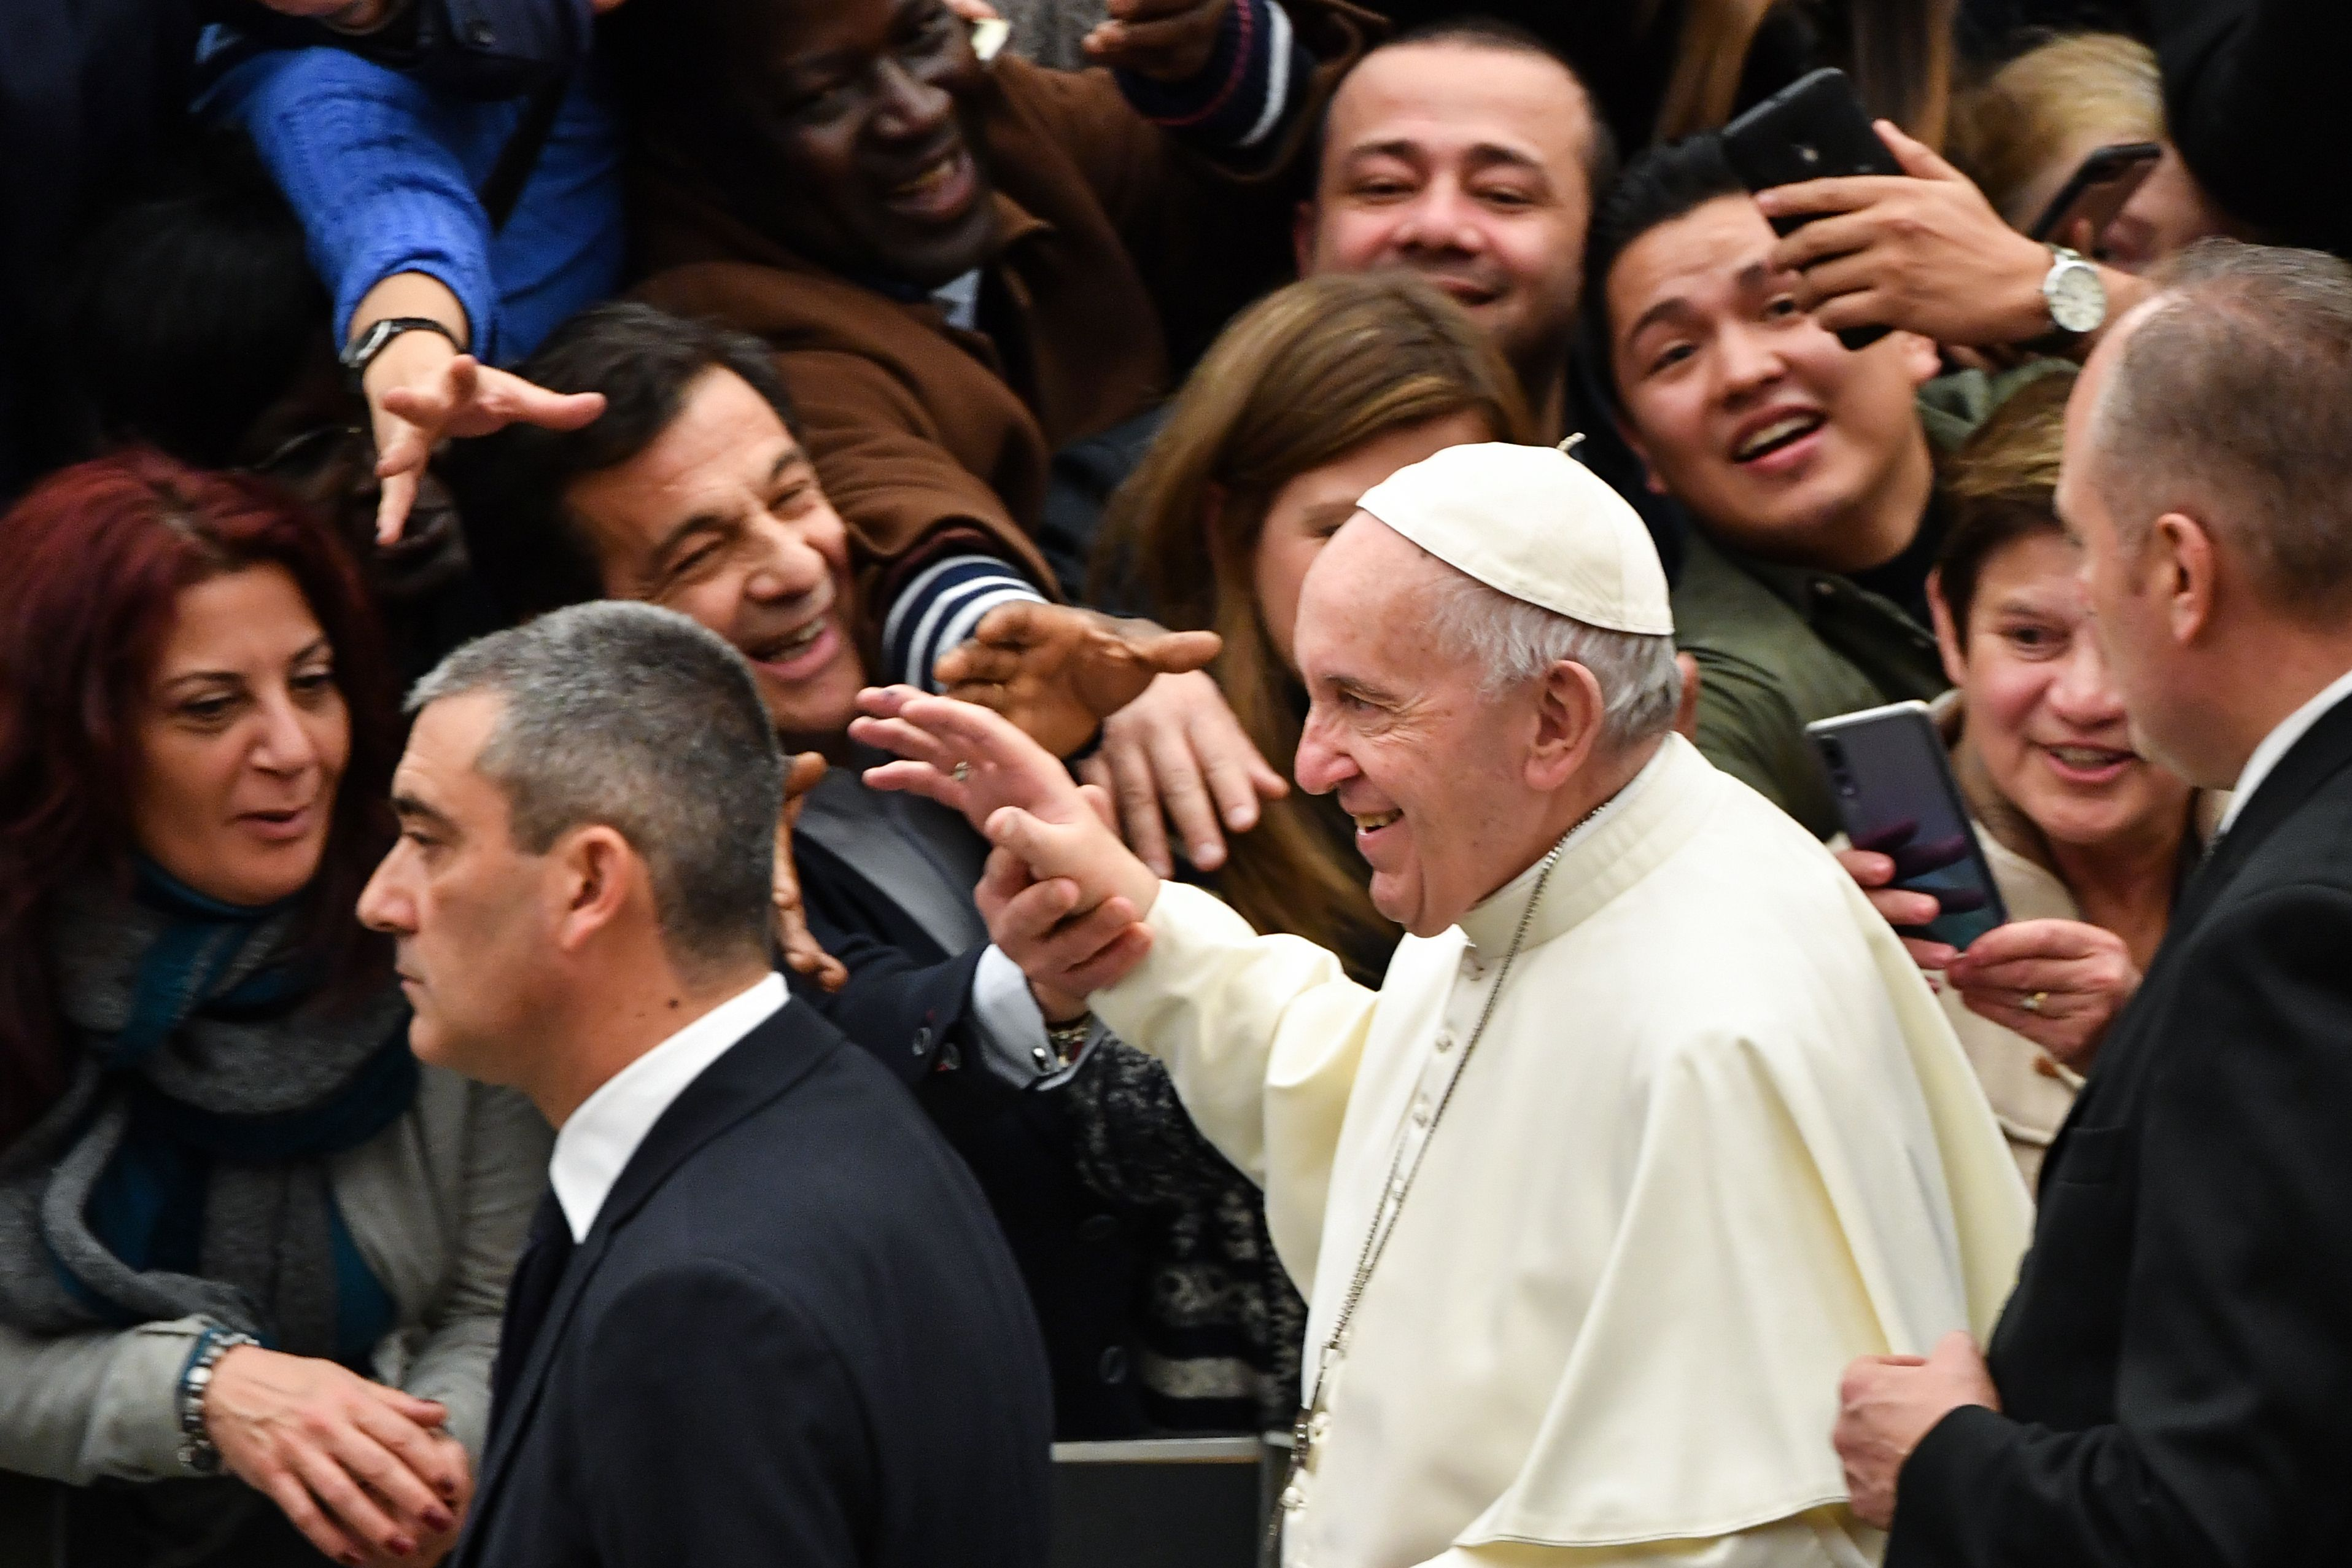 Pope Francis blesses attendees at the end of the weekly general audience on January 9, 2019 at Paul-VI hall in the Vatican. (ANDREAS SOLARO/AFP/Getty Images)